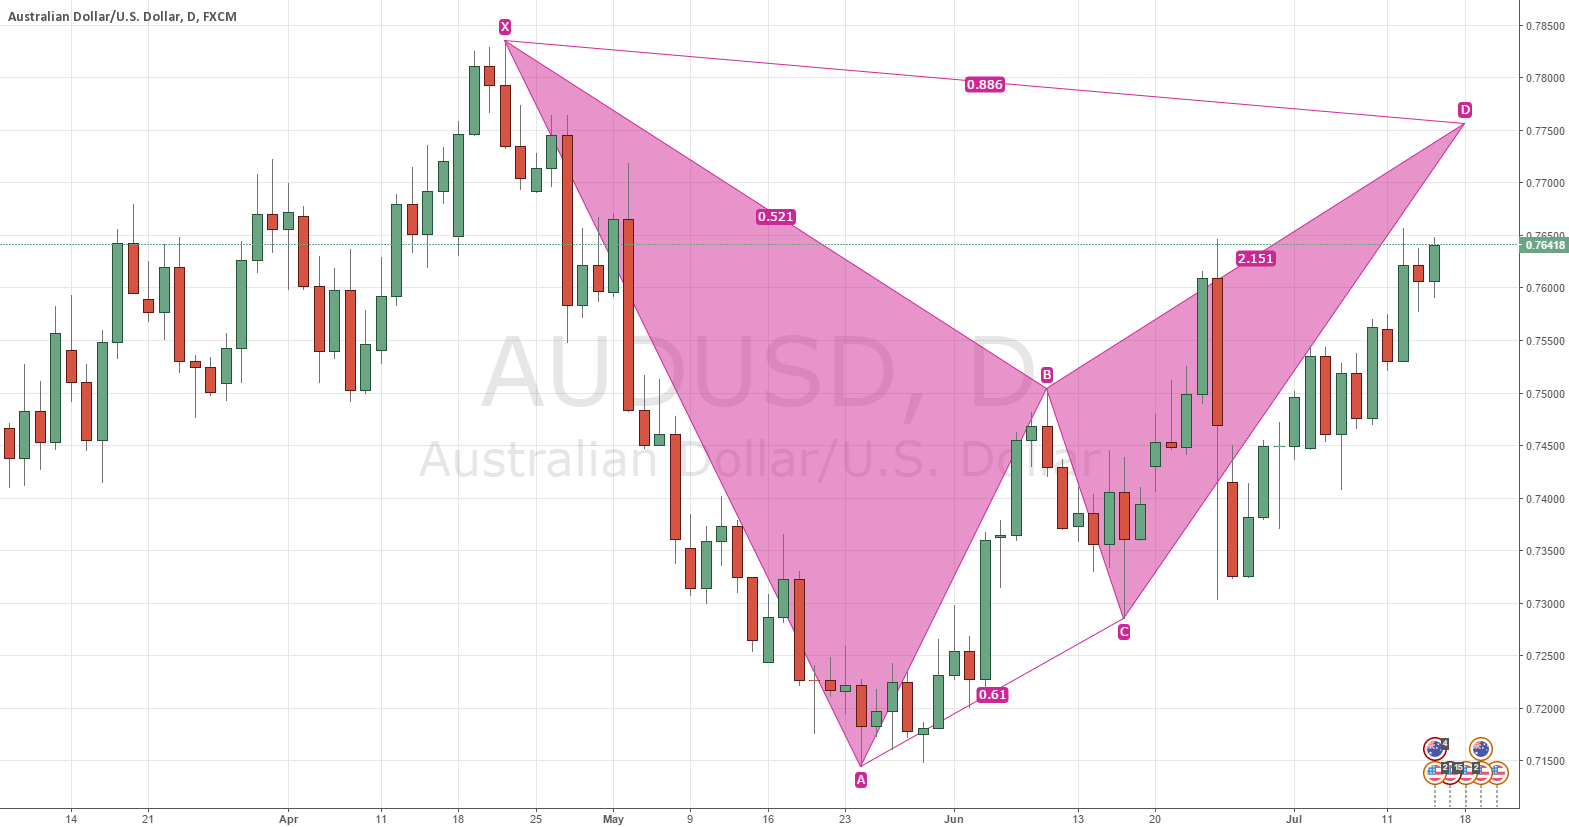 AUDUSD Daily Chart - Potential Bat Pattern